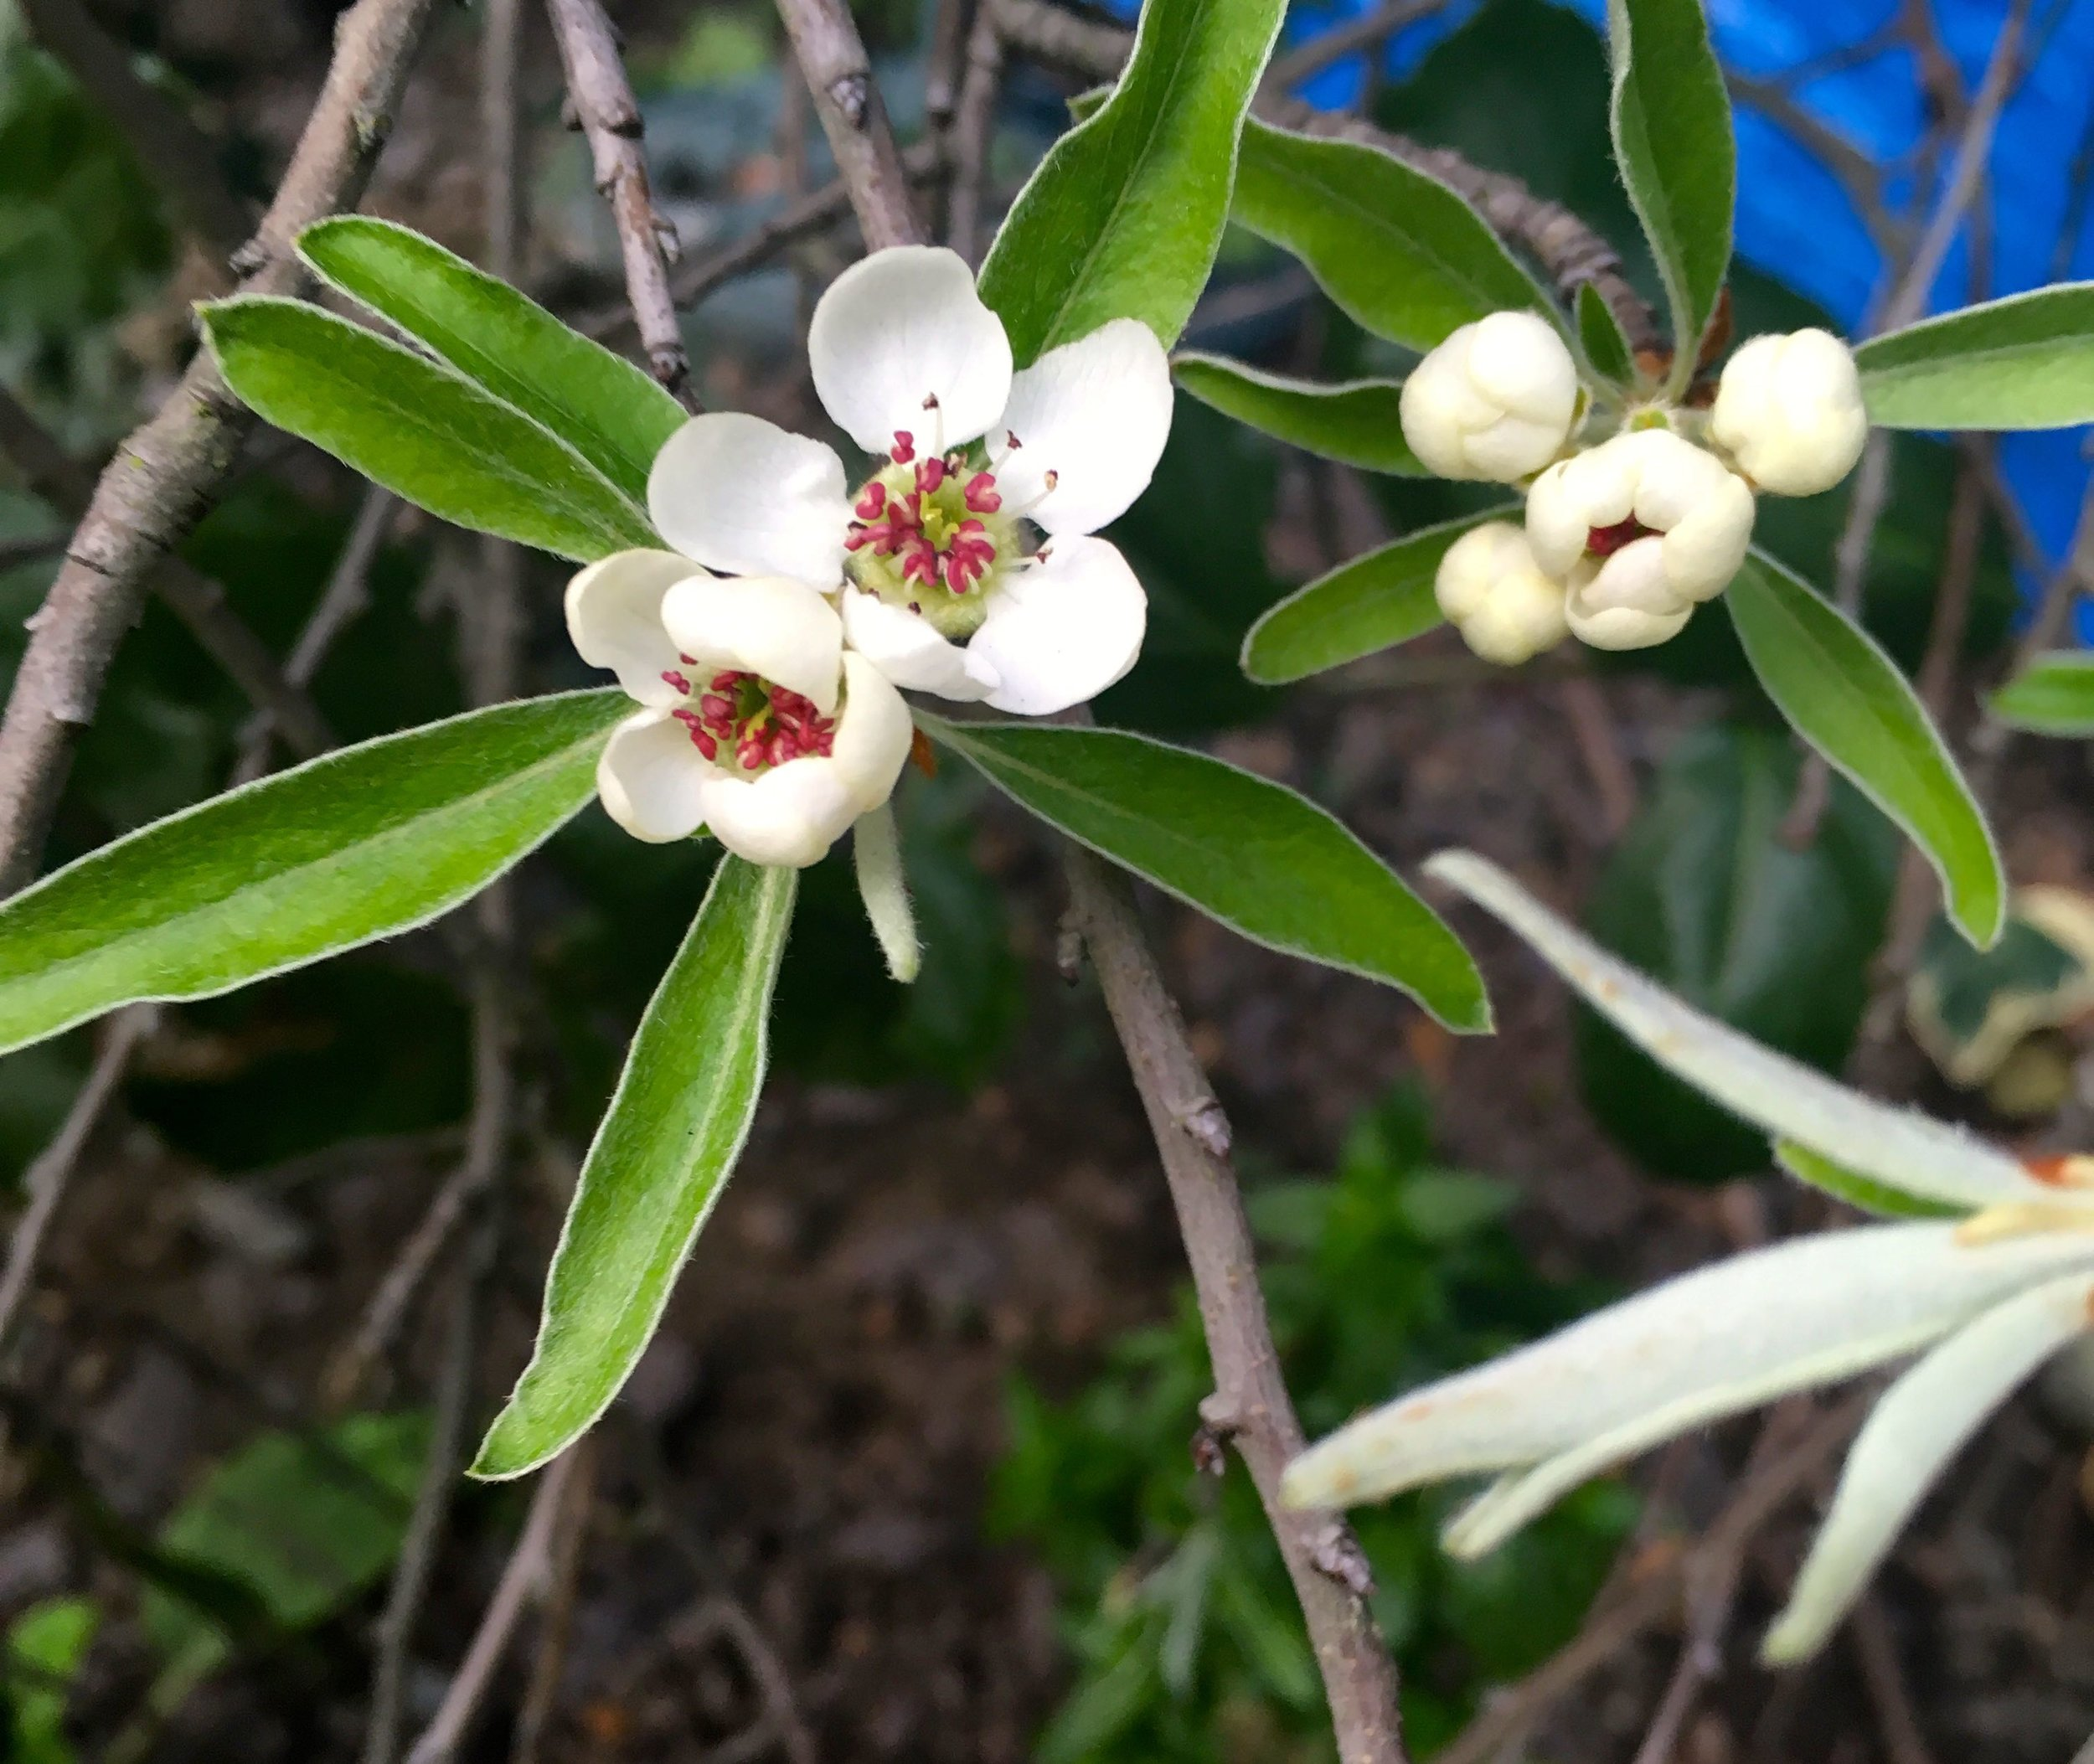 Flowers on the willow pear bush